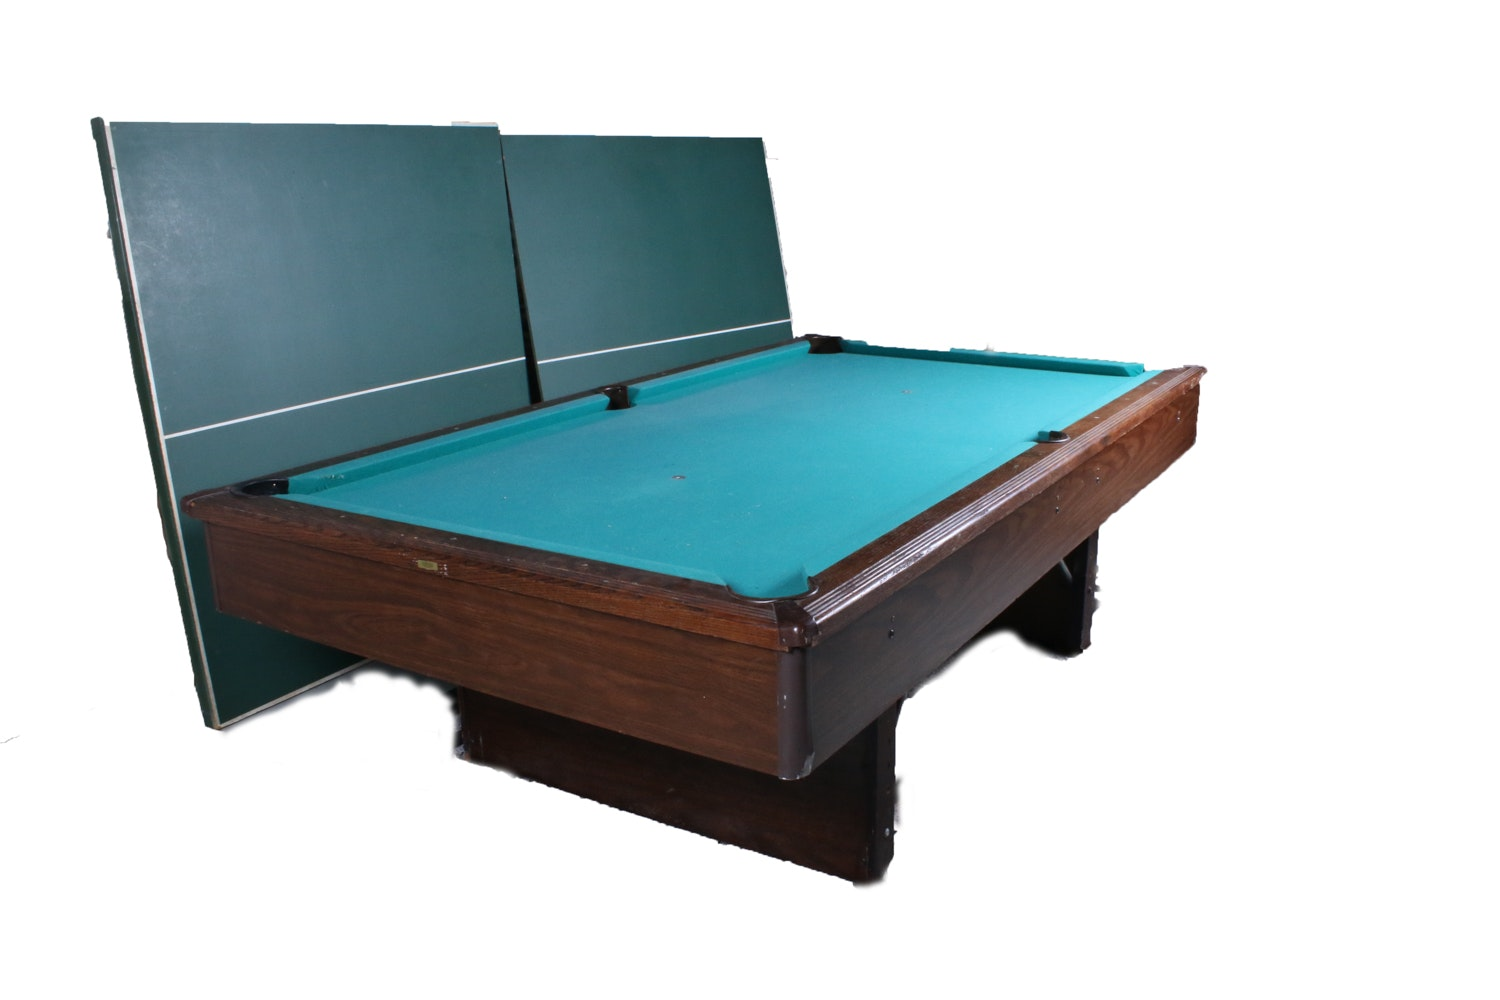 Sportcraft Billiard Table Combination Billiards and Ping Pong Table with Accessories : EBTH